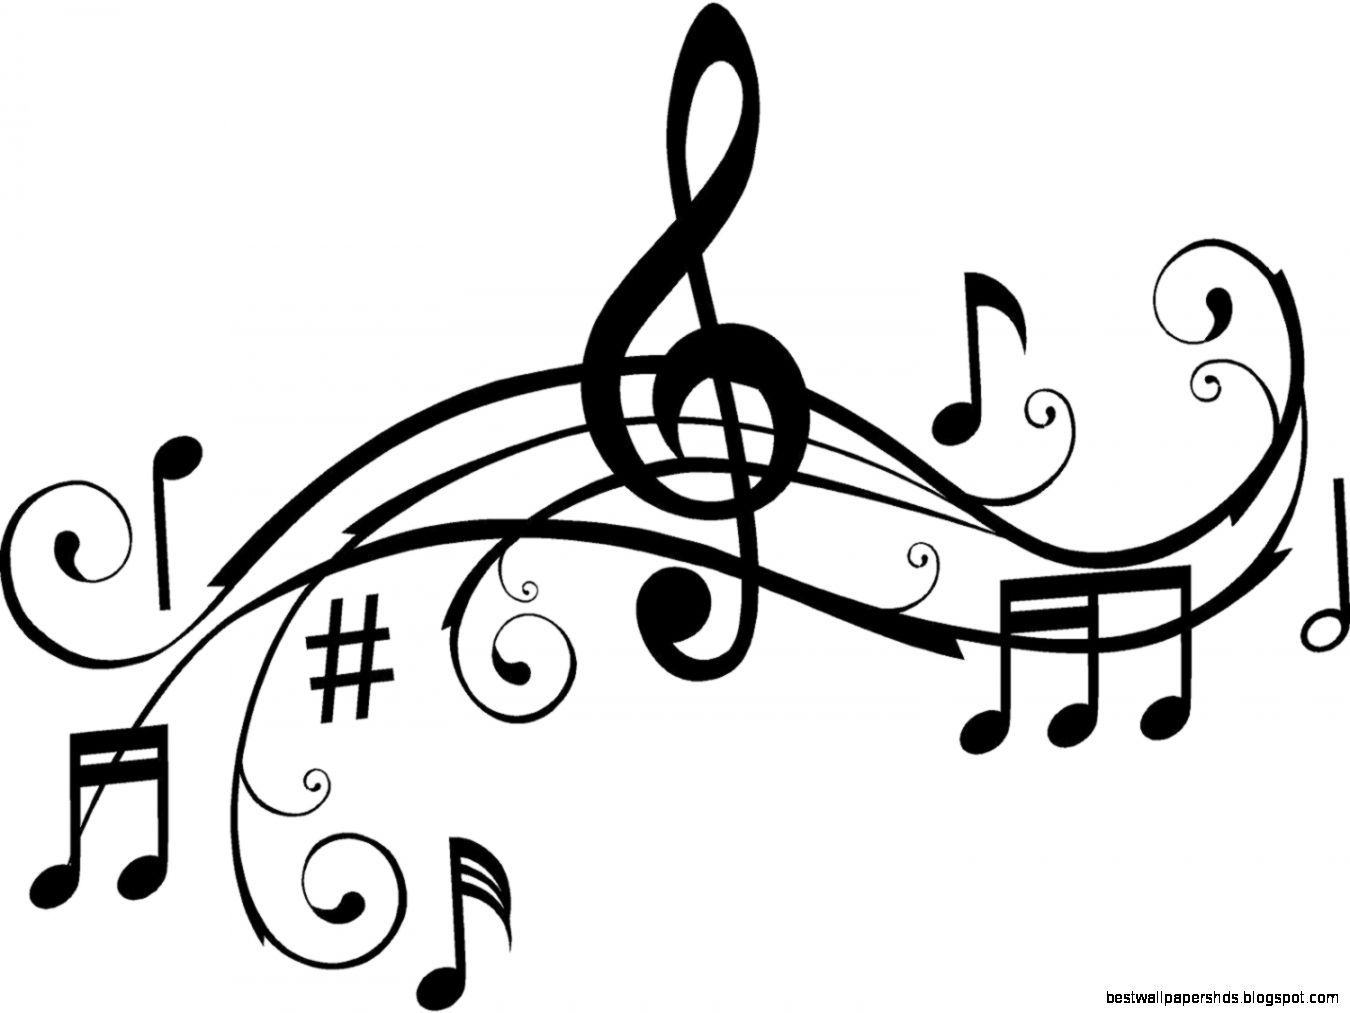 Music Notes Clipart Black And White Clip-Music Notes Clipart Black And White Clipart Panda Free Clipart-17